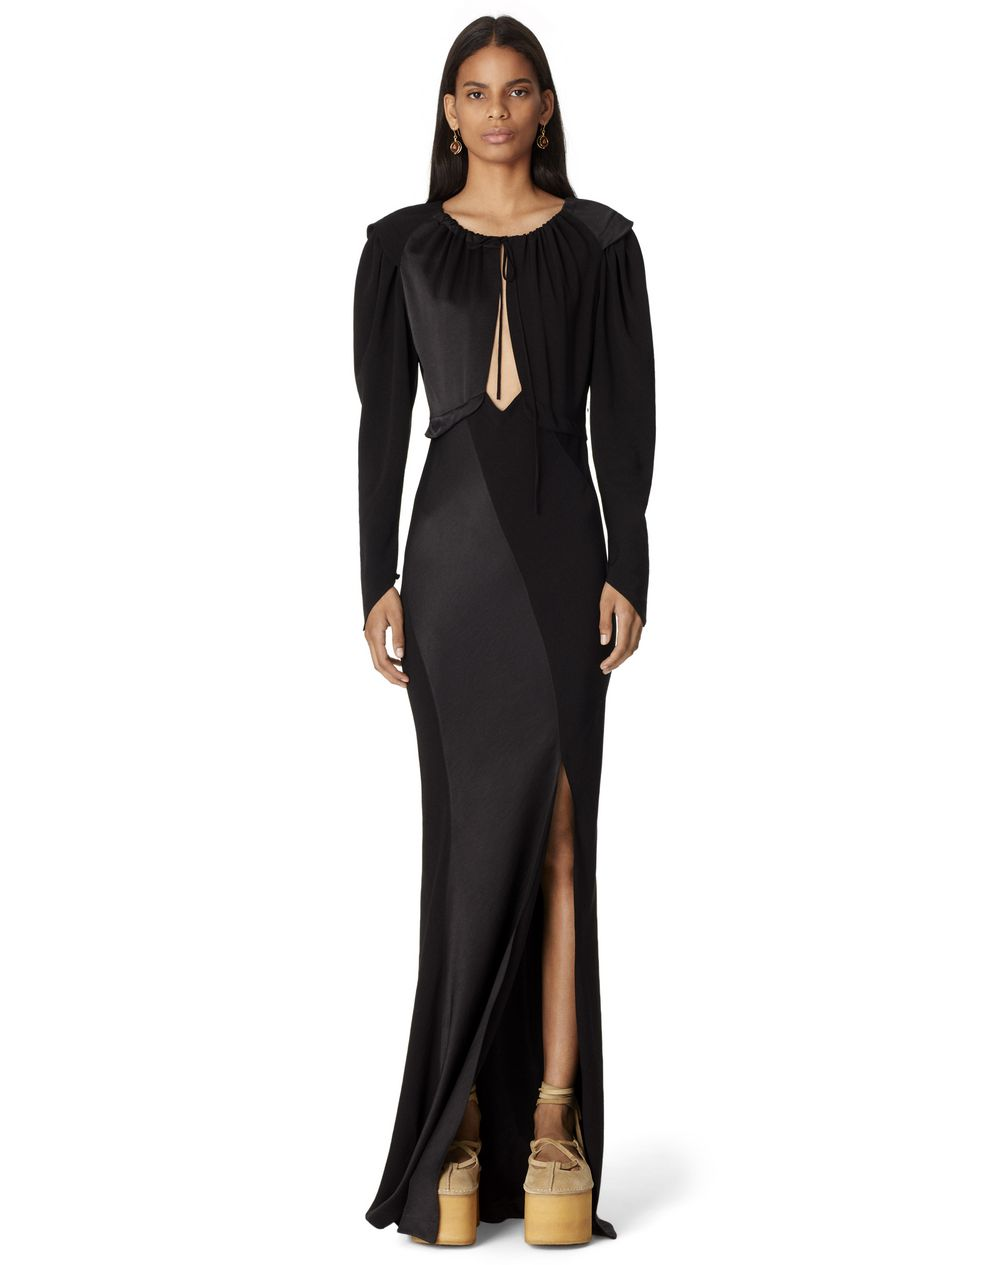 BI-MATERIAL SLIT HEART DRESS - Lanvin